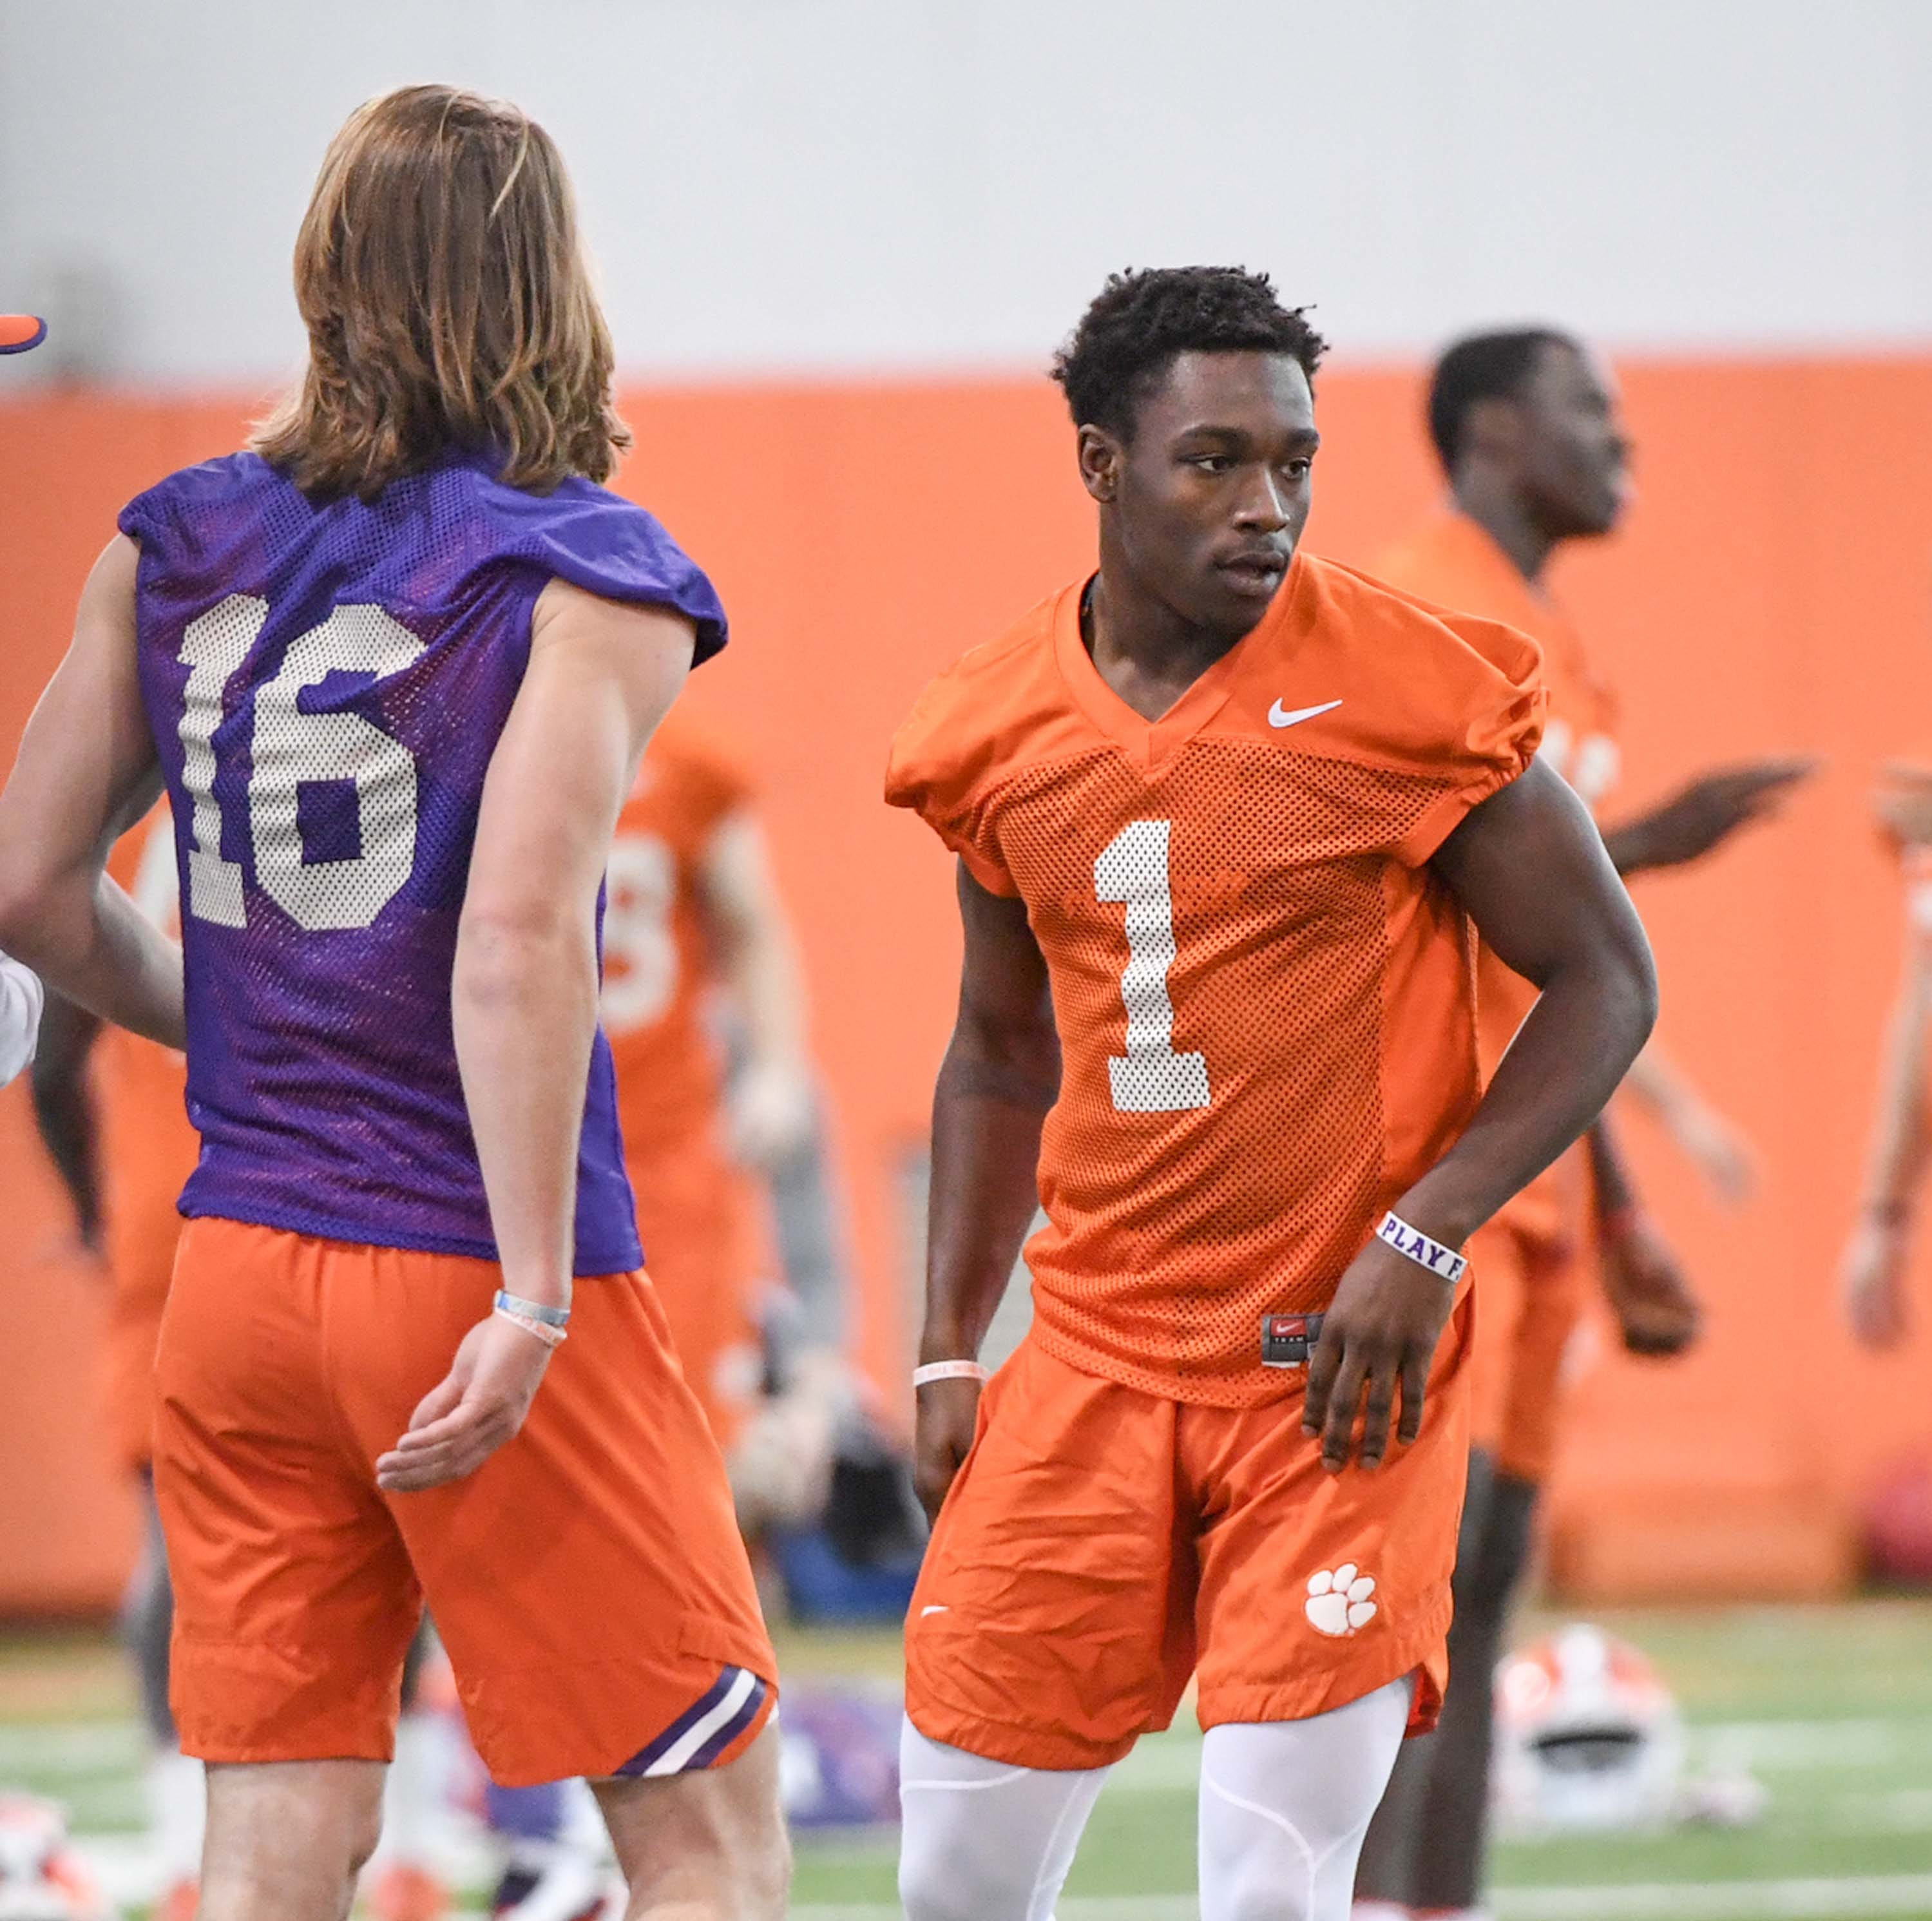 Clemson football: 5 things to look for from Clemson's defense in spring game